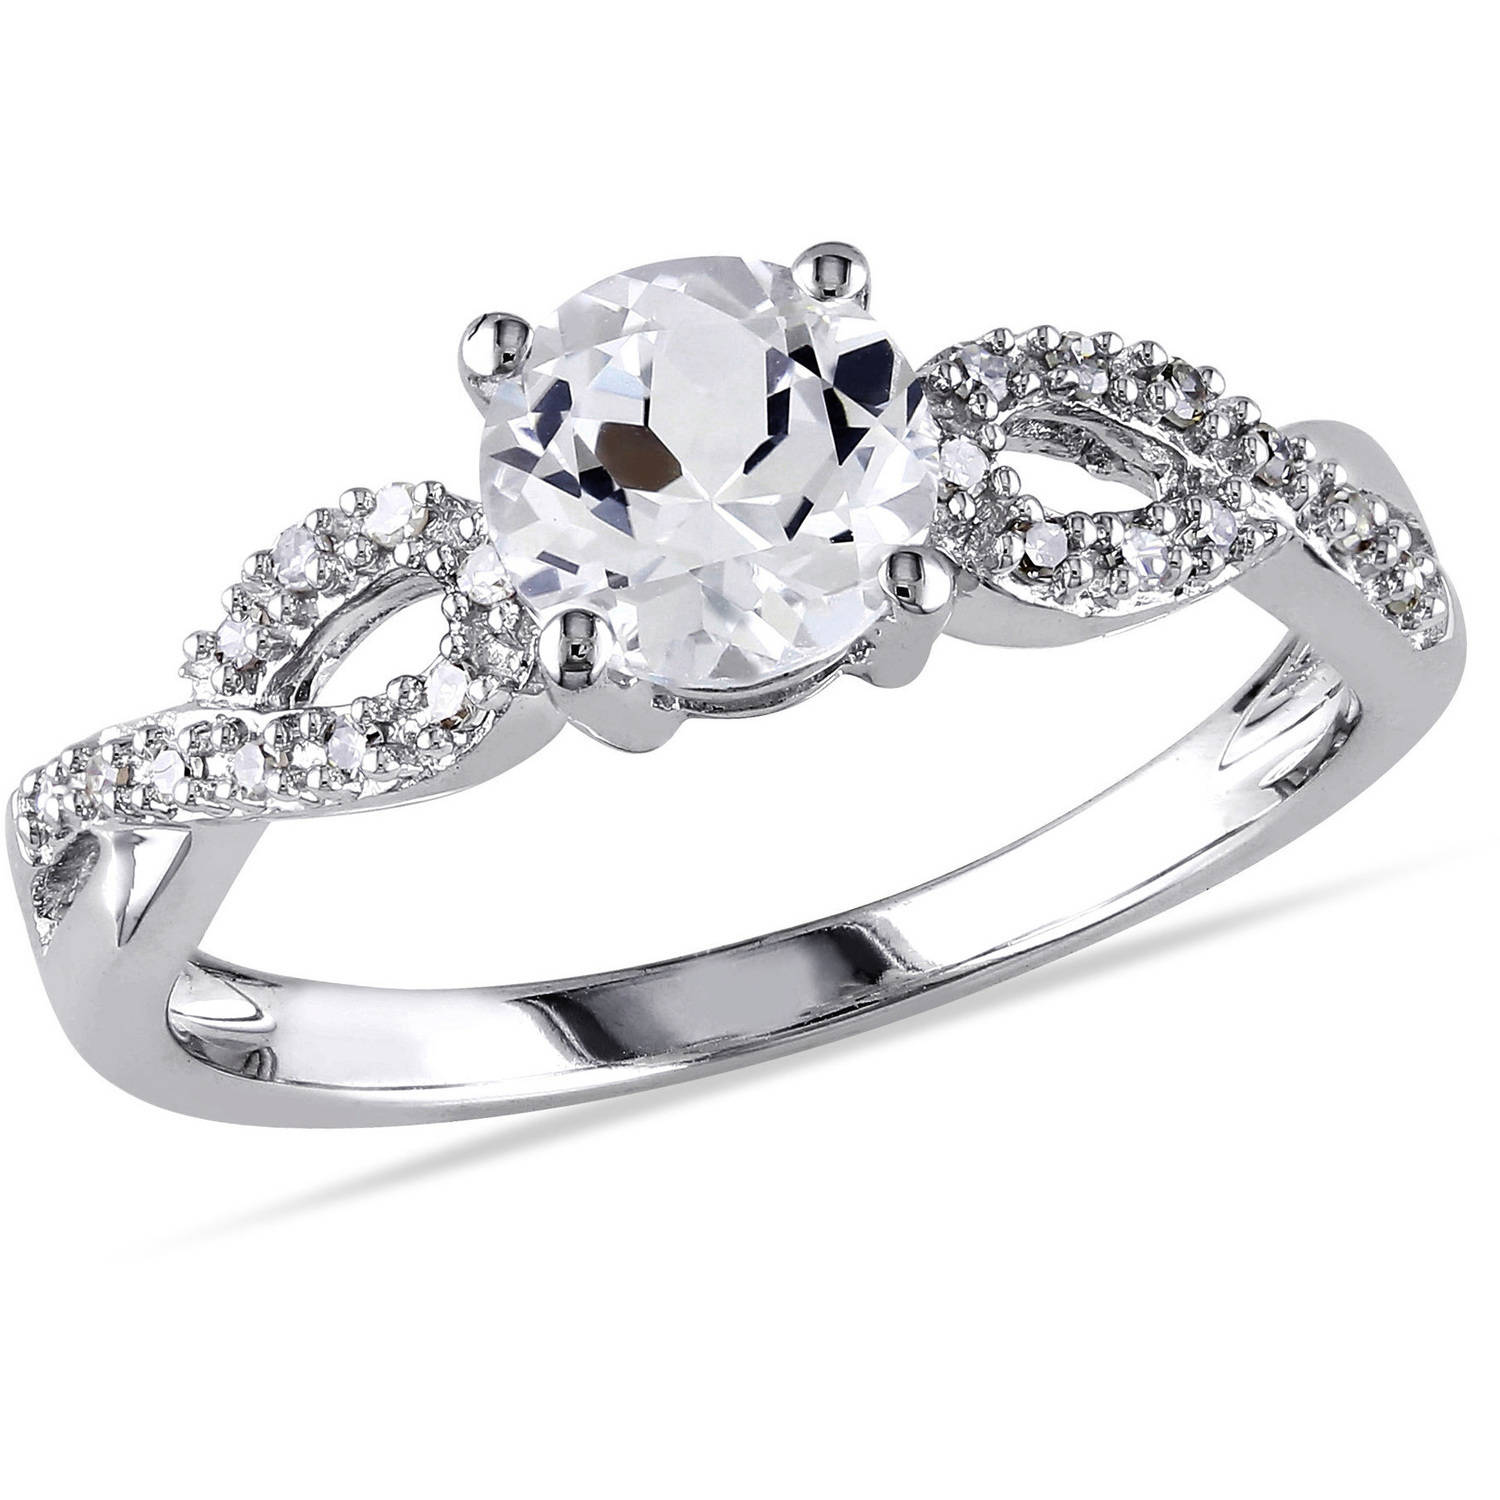 Miabella 1/10 Carat T.W. Diamond and 1 Carat T.G.W. Created White Sapphire 10kt White Gold Infinity Engagement Ring